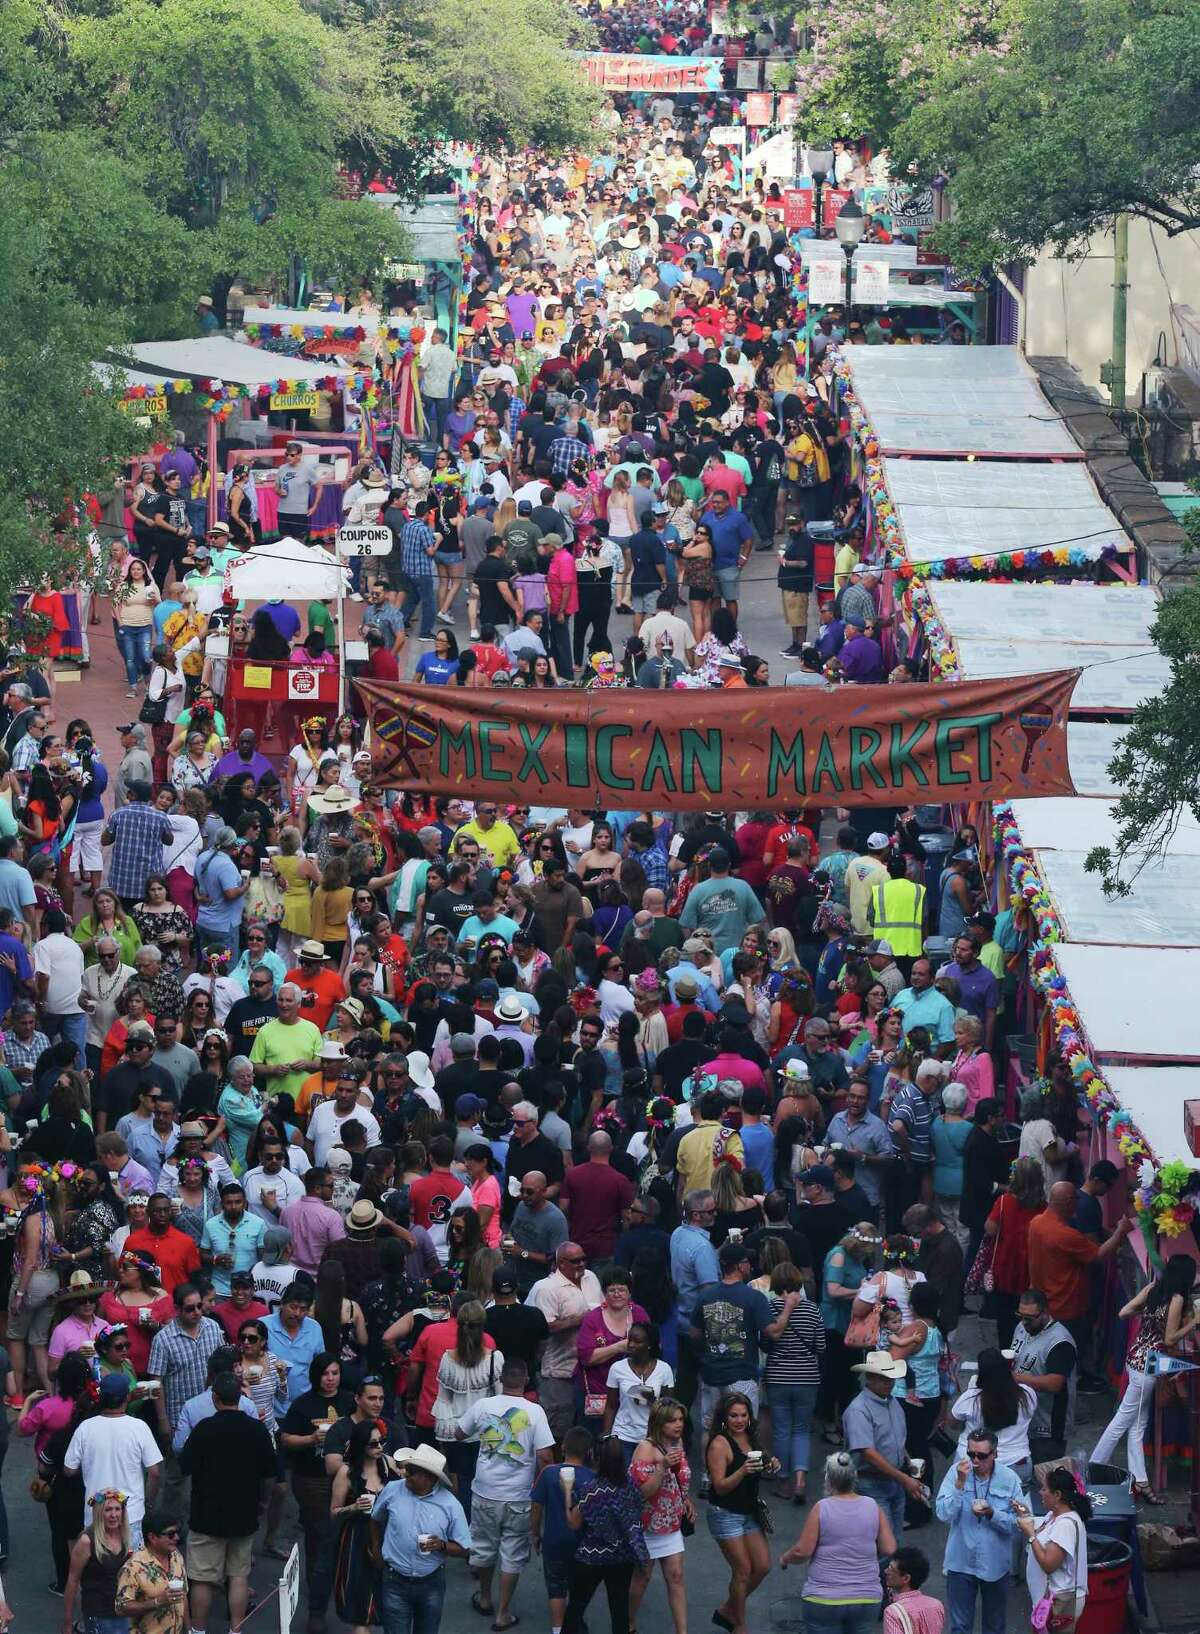 San Antonio's biggest celebration is back this week after canceling its festivities in 2020 due to the coronavirus pandemic. The 10-day party starts Thursday, June 17, and lasts until Sunday, June 27.